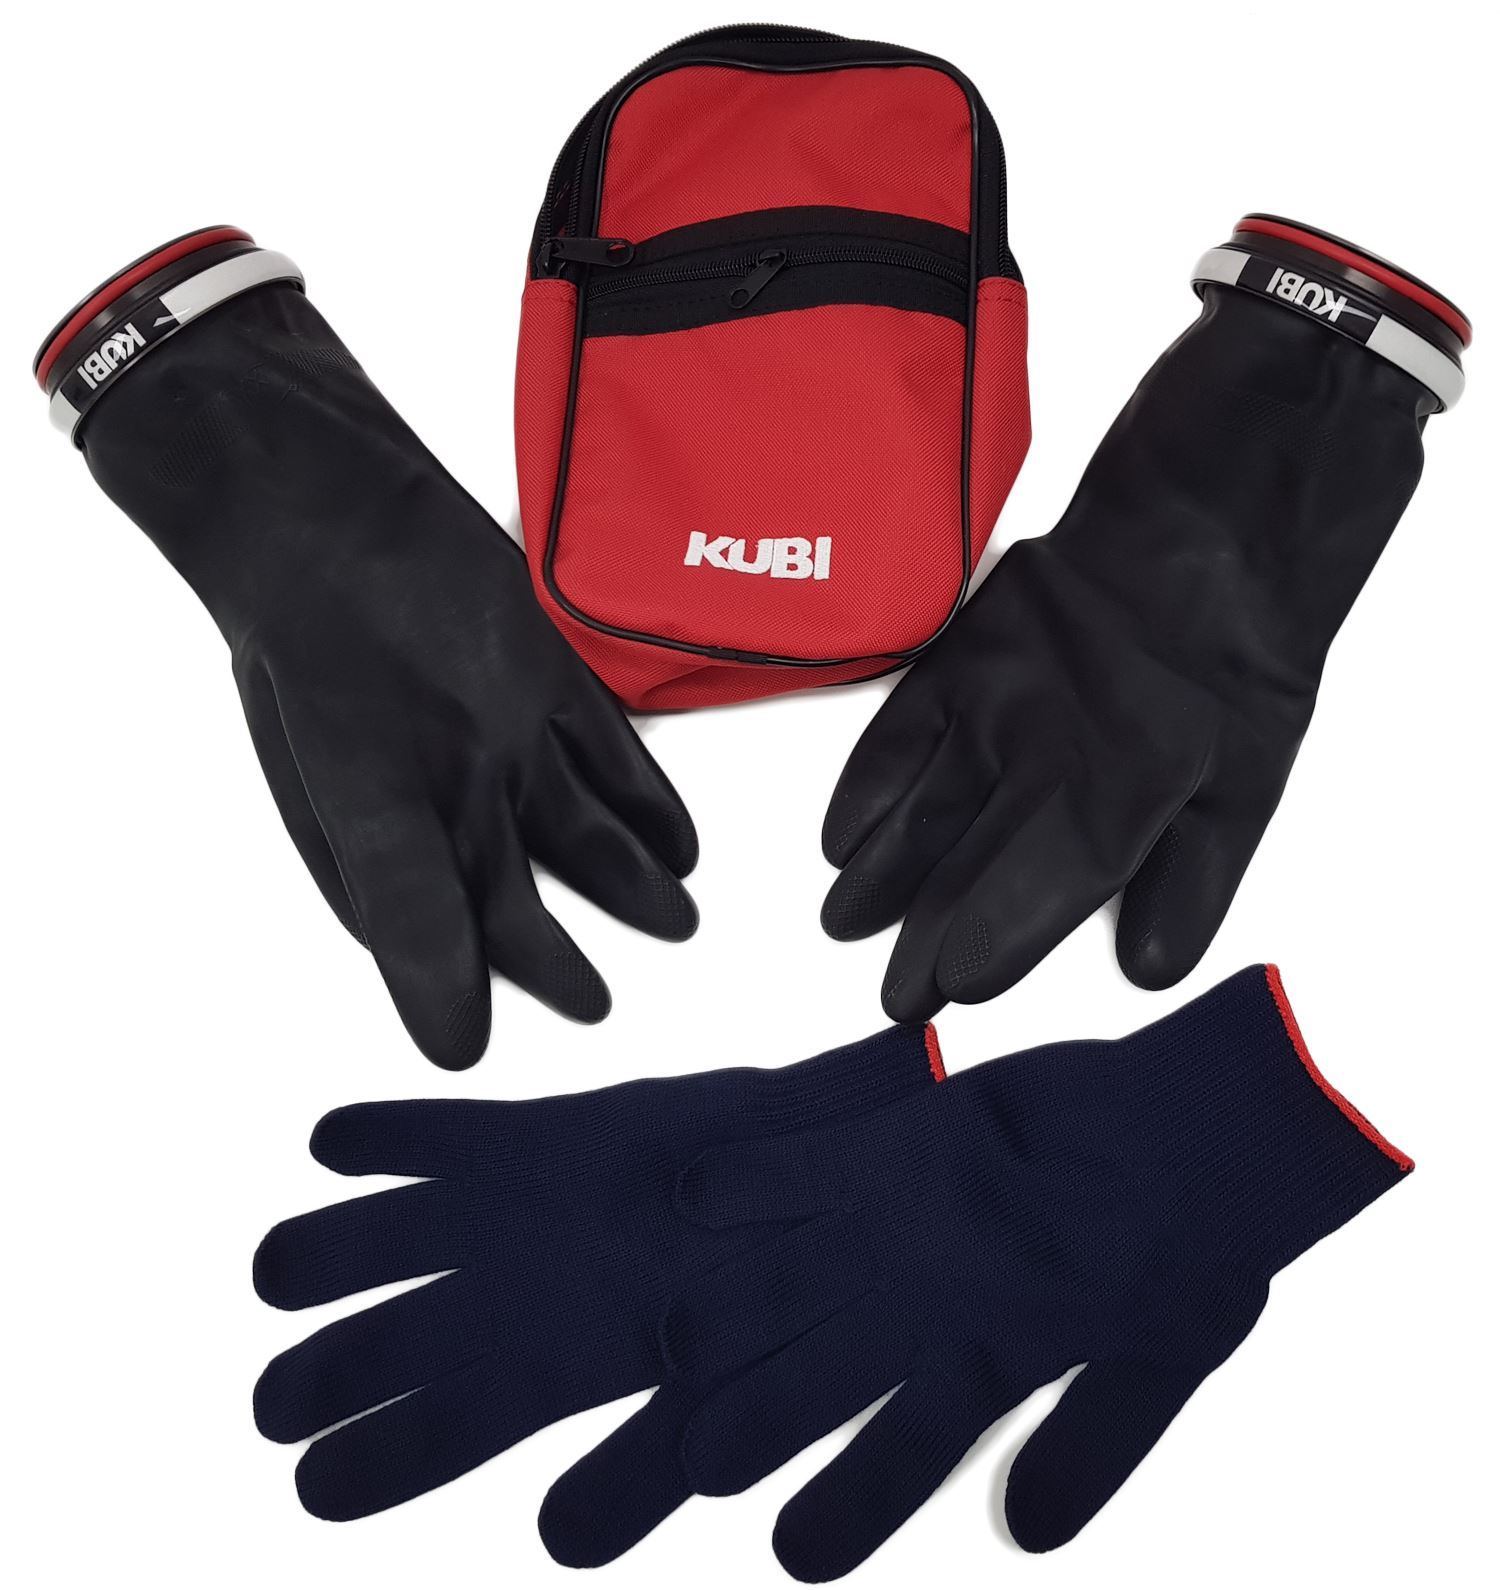 KUBI -  Dry Glove Half Side Set Only thumbnail